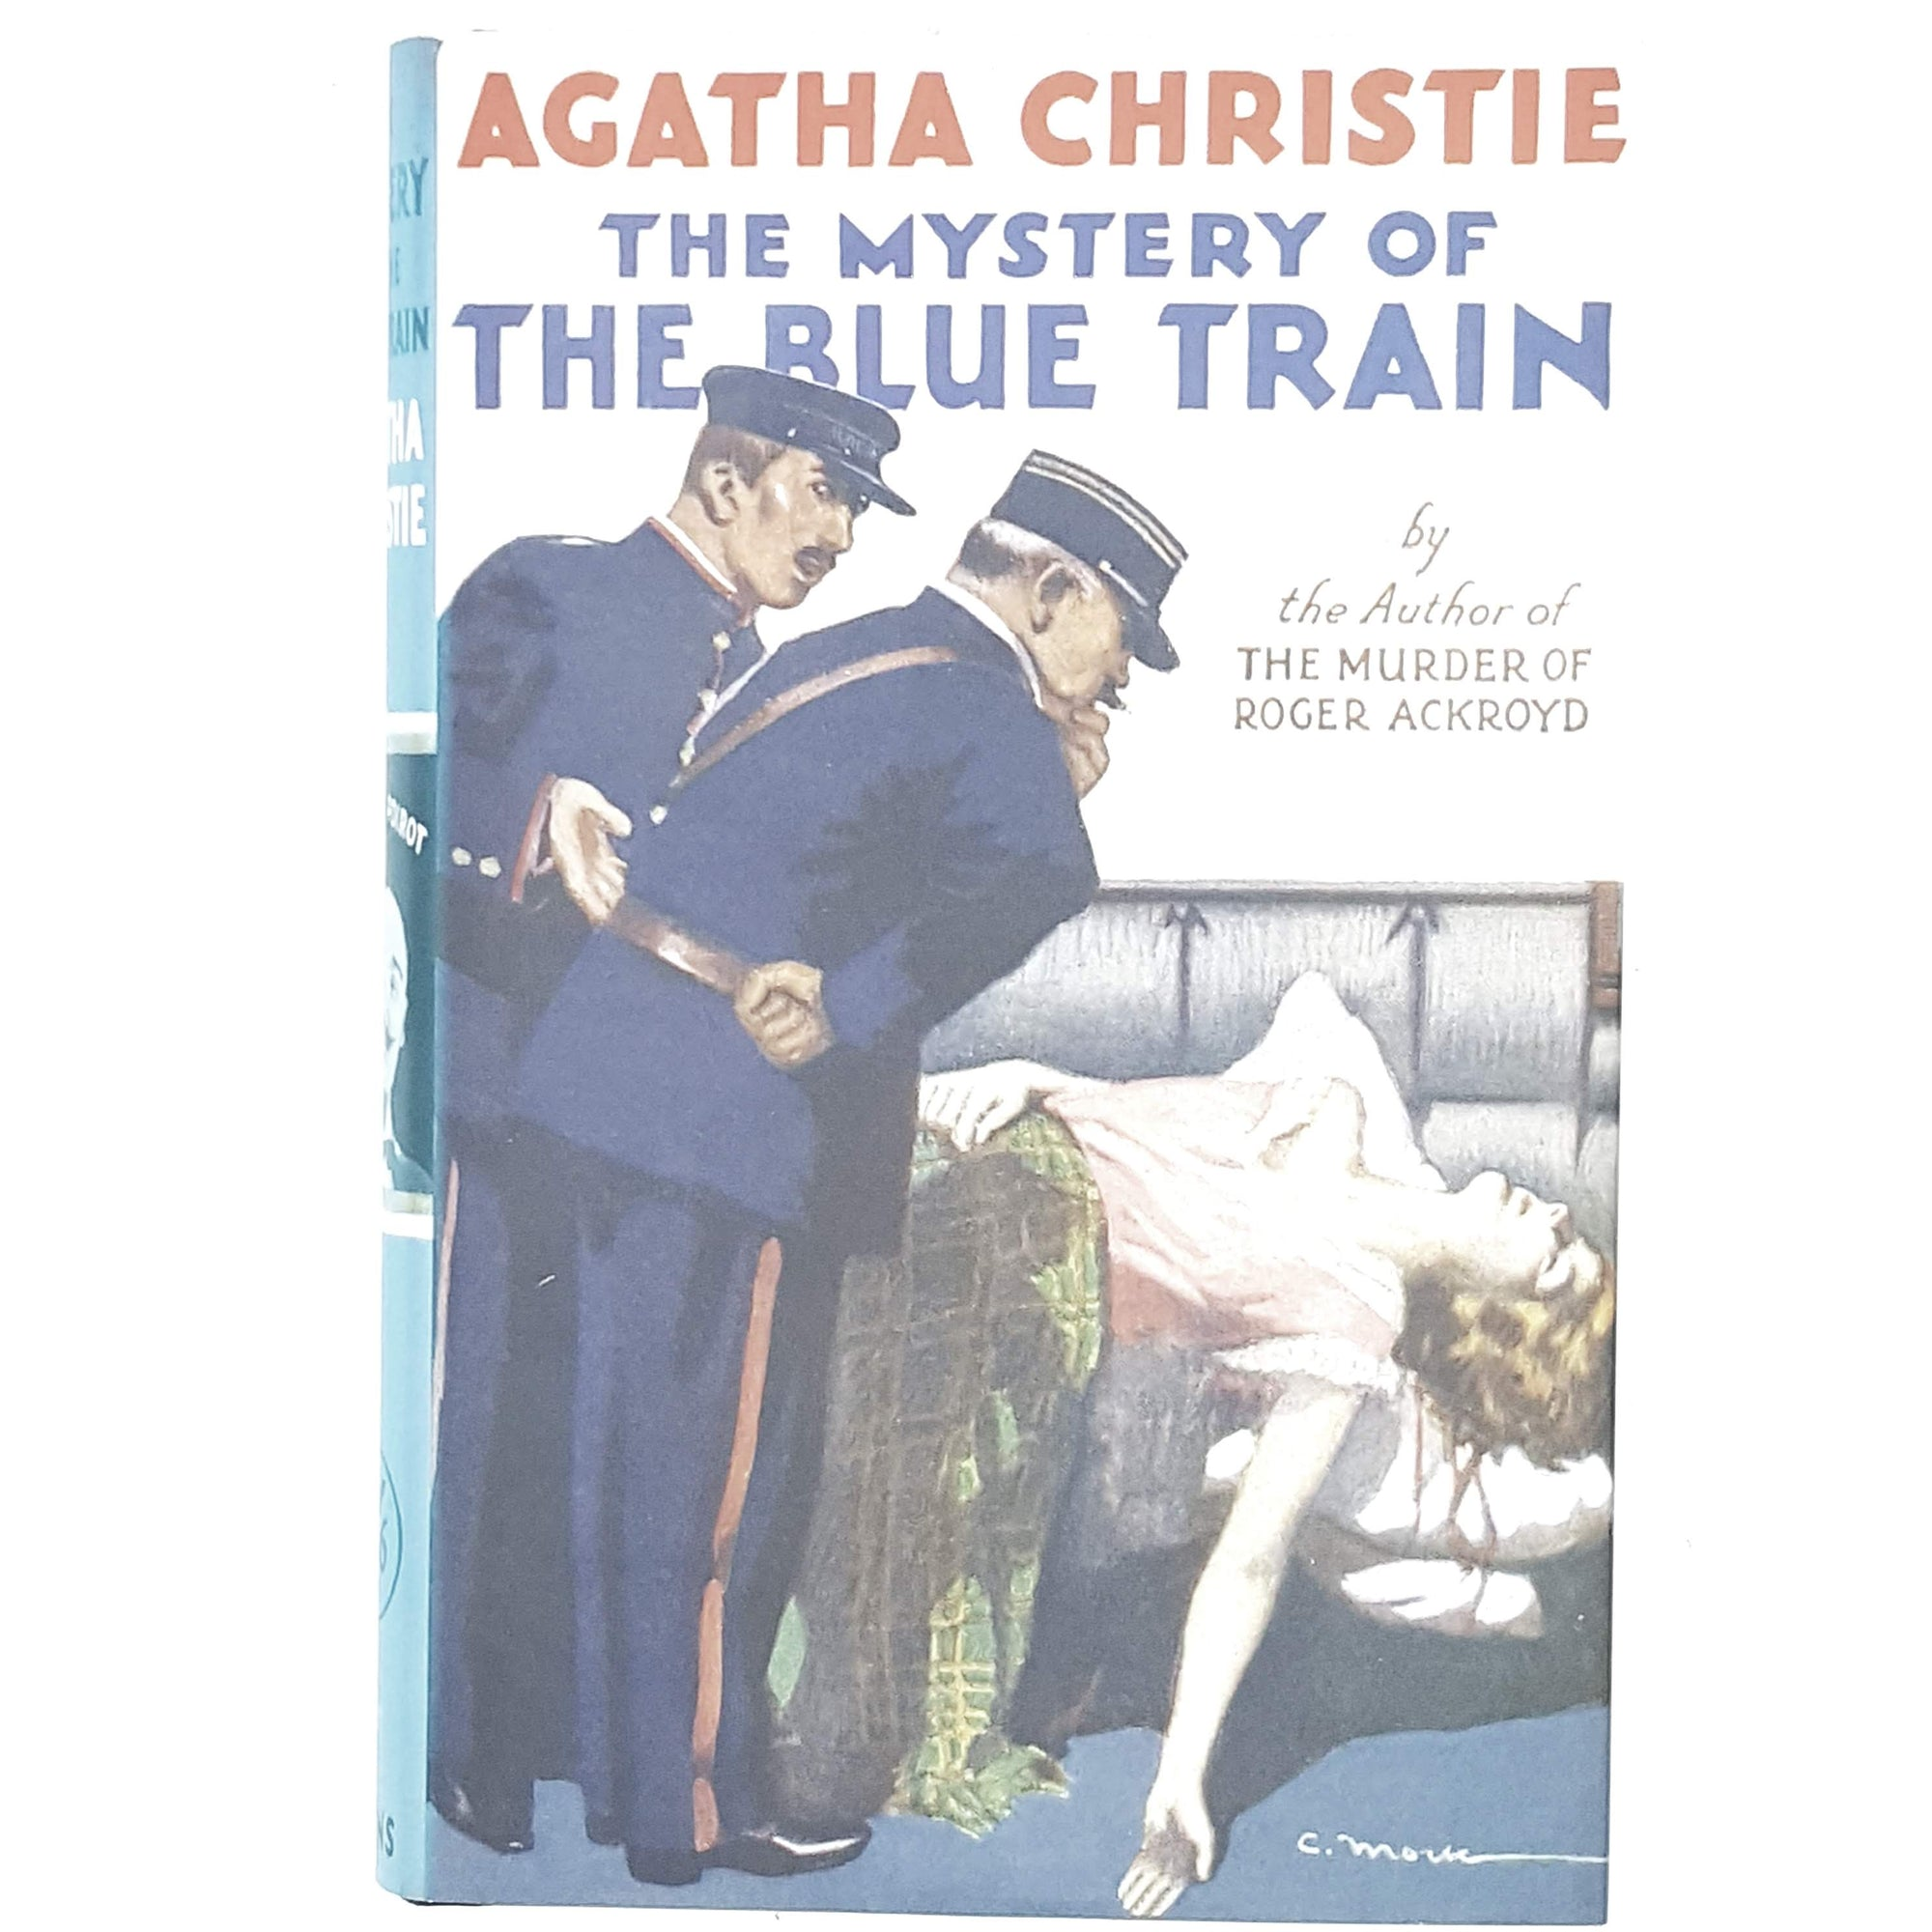 Agatha Christie's The Mystery of the Blue Train